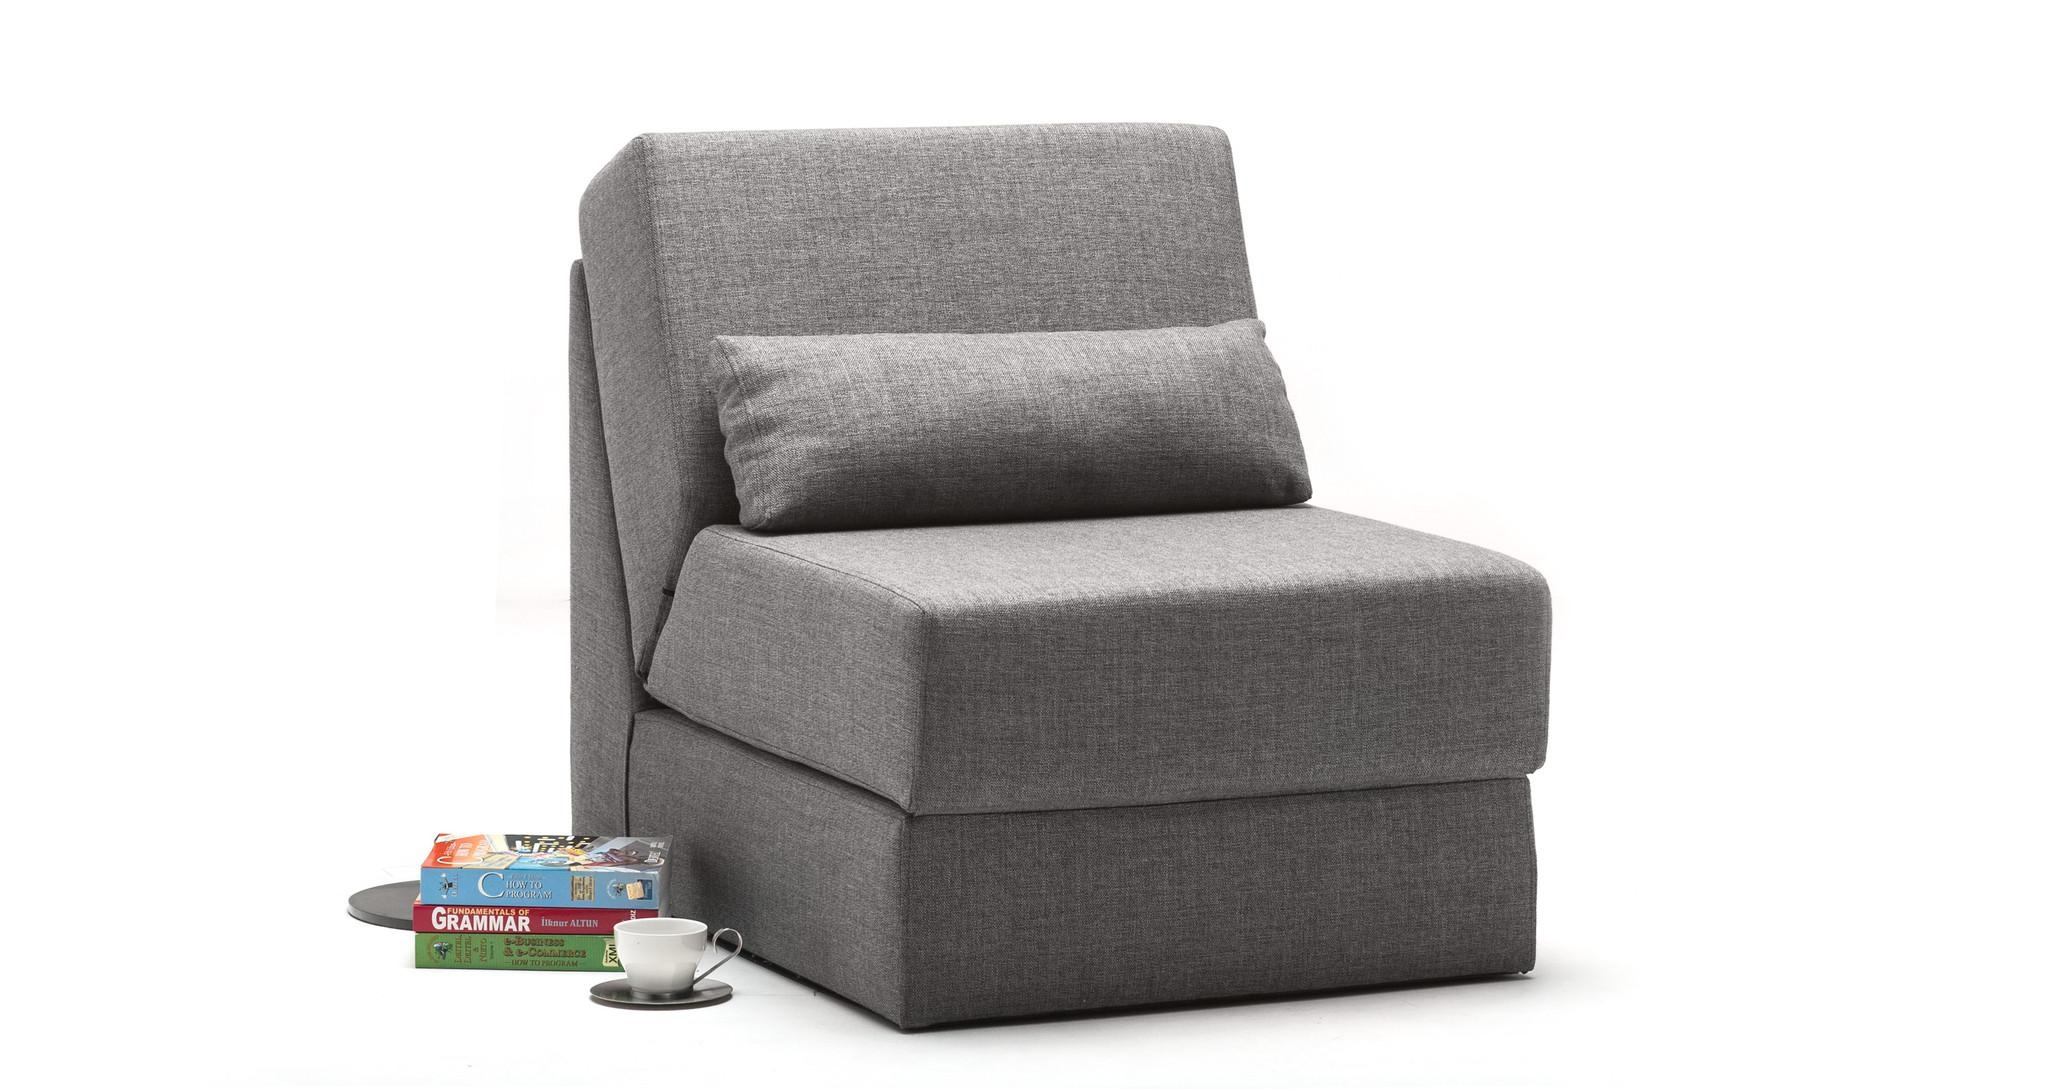 miniature sofa grey and brown coffee table mini bed corner for in ireland online or